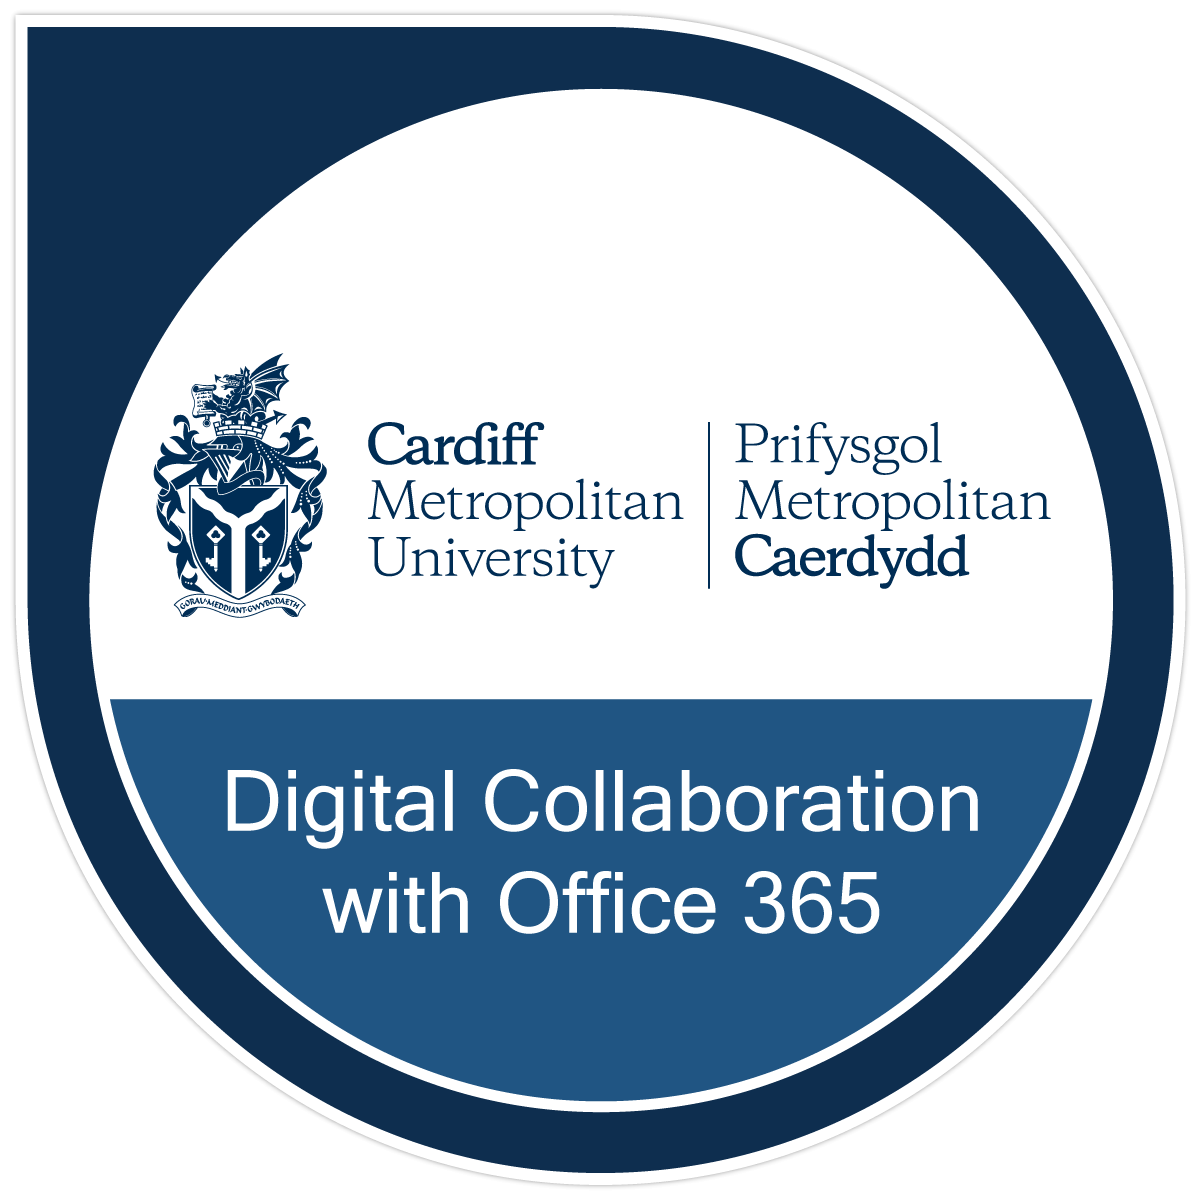 The Digital Collaboration with Microsoft Teams and Office 365 badge